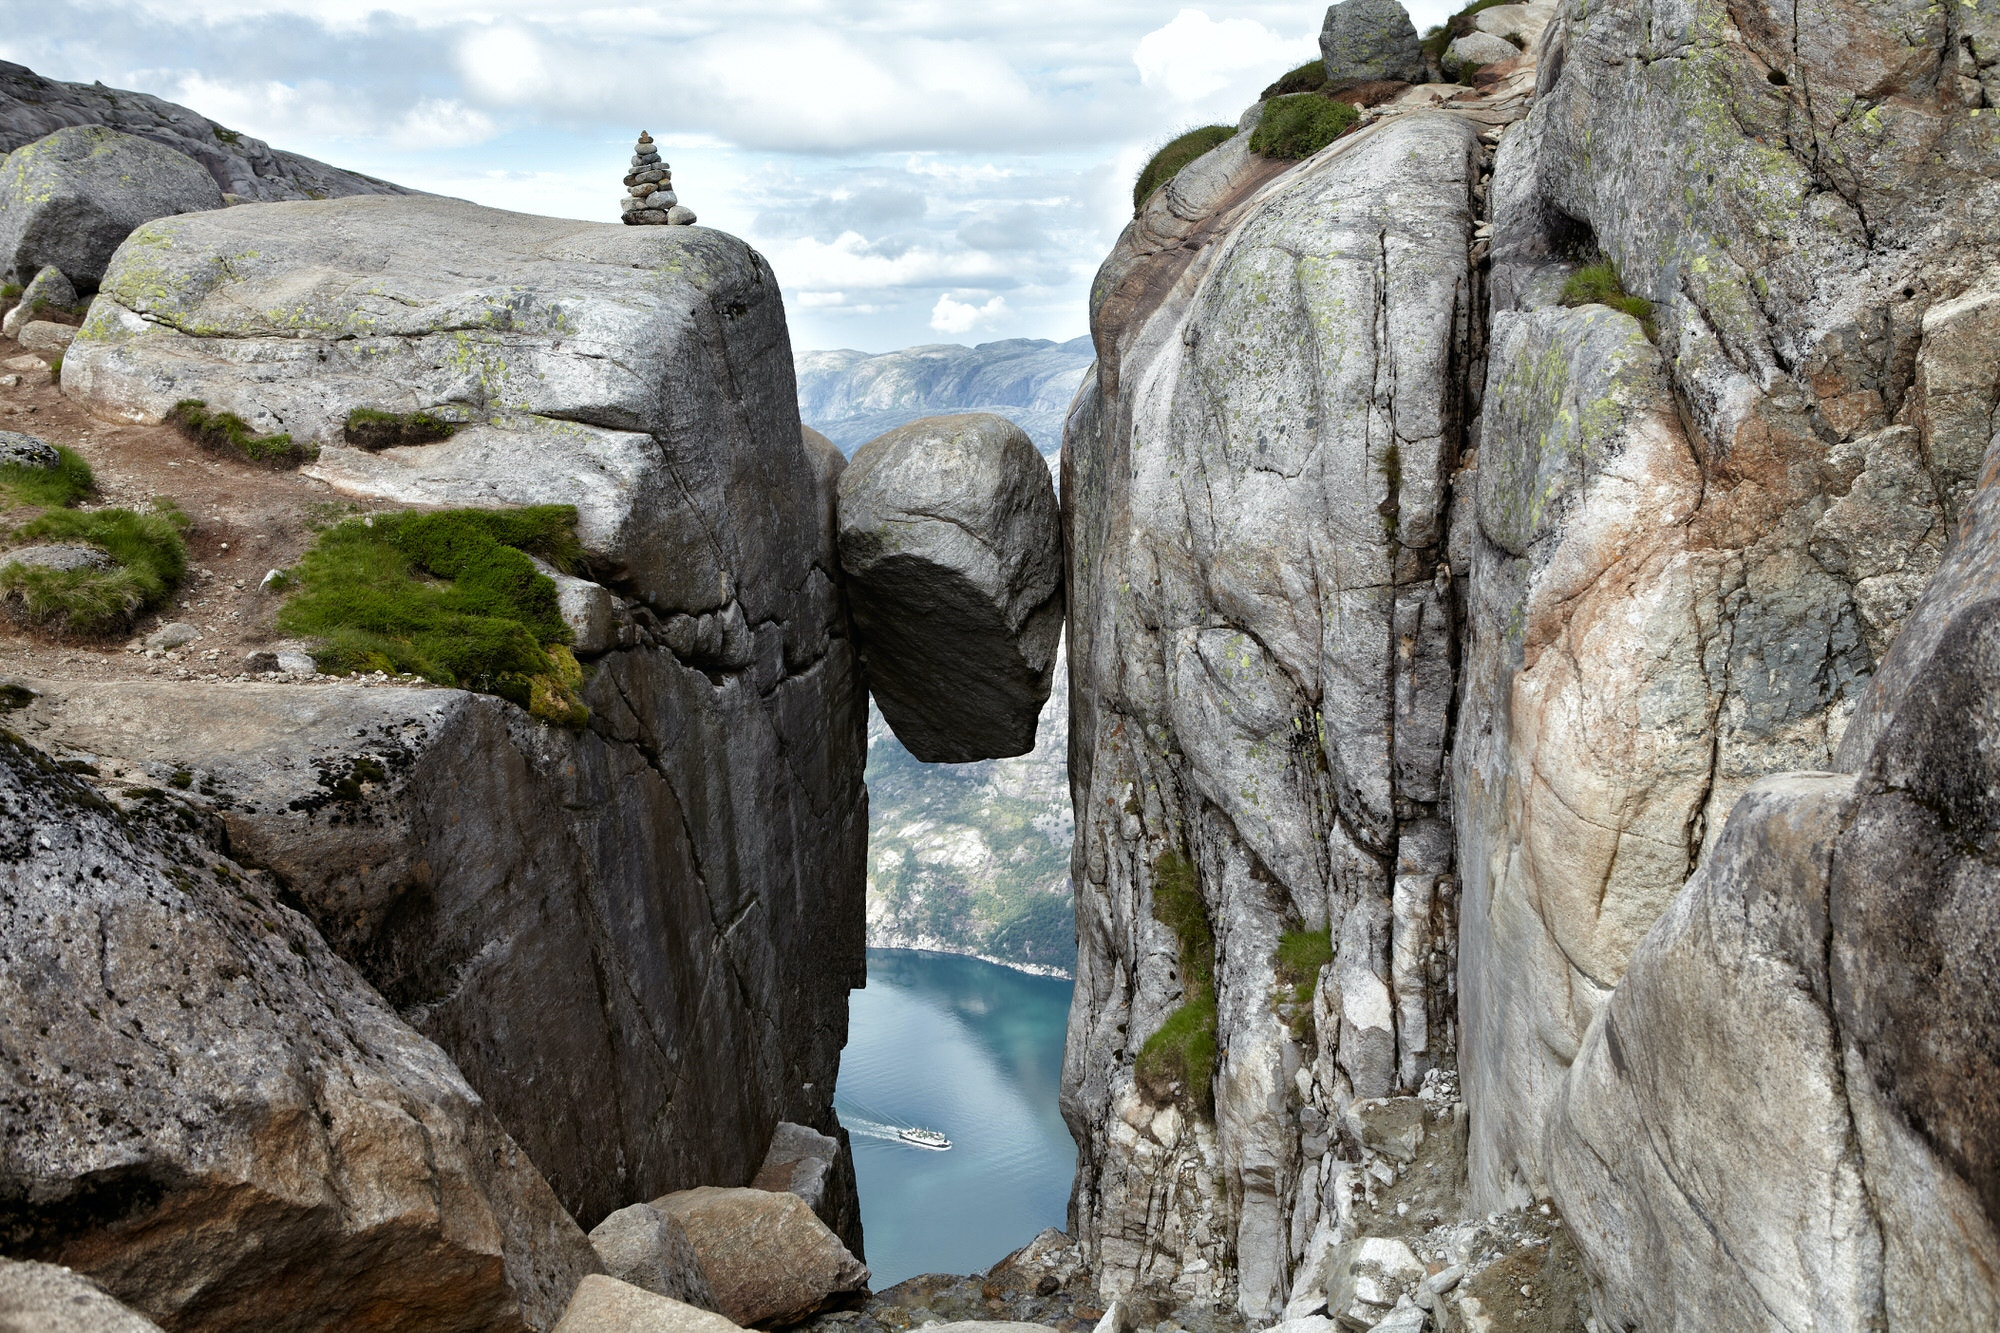 Norway's Kjeragbolten, a boulder precariously wedged in a mountain crevasse, has become a major tourist attraction for daredevils © Beas777 / Shutterstock